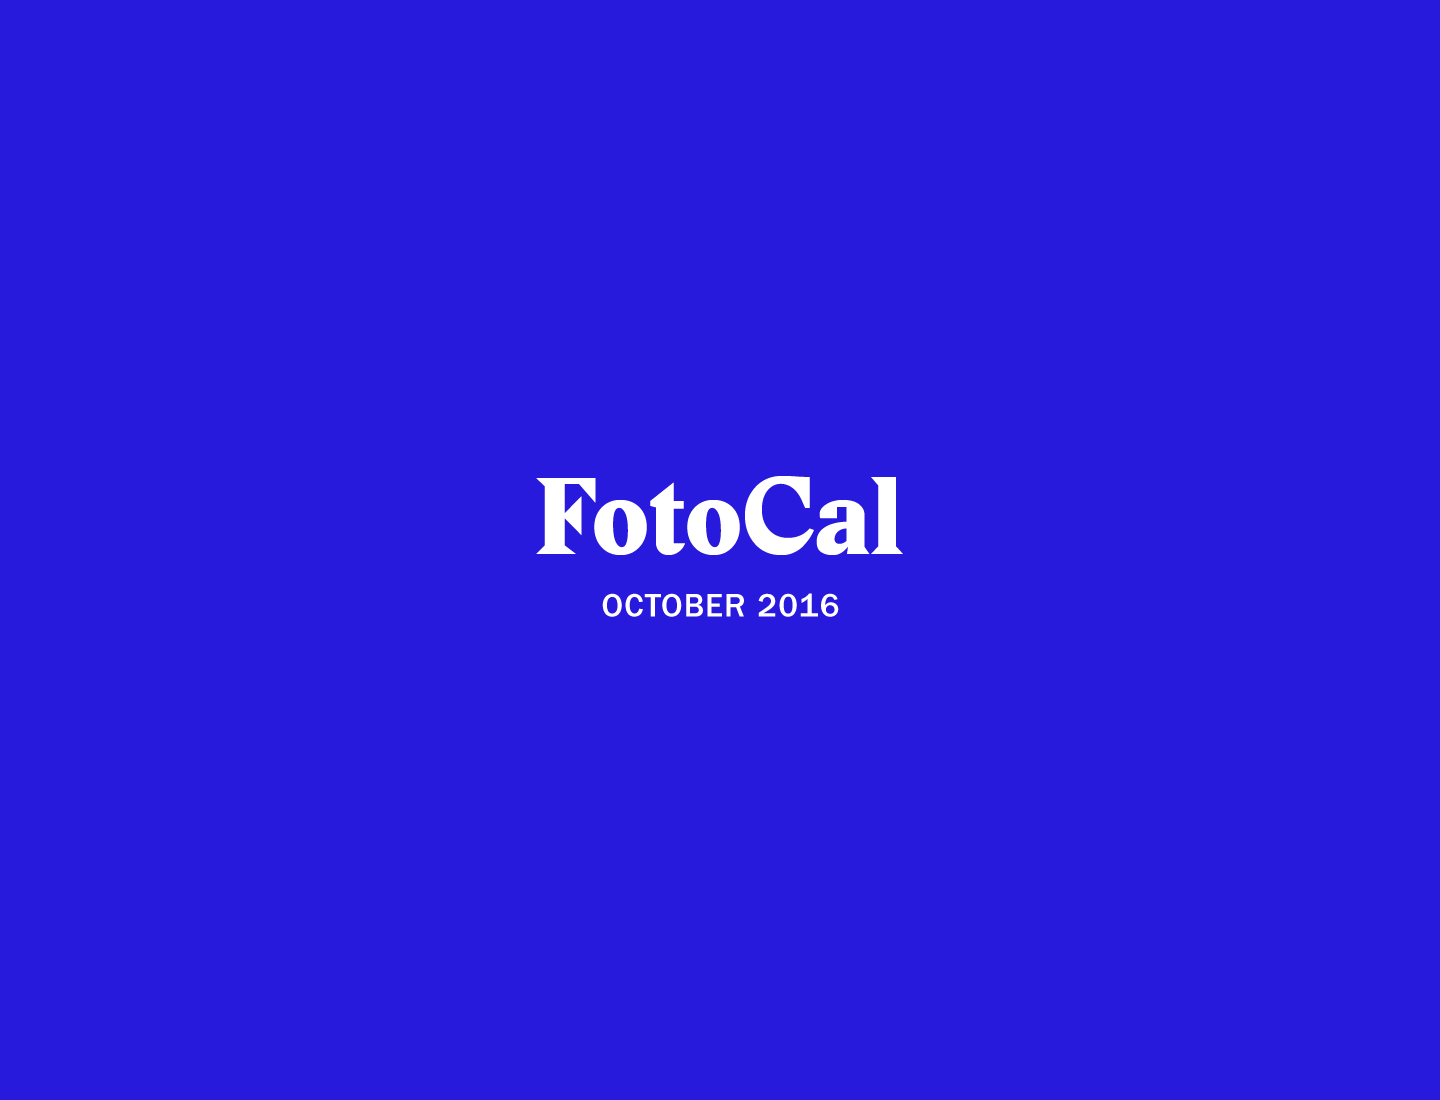 FotoCal — Photography Awards, Grants and Open Calls Closing in October 2016